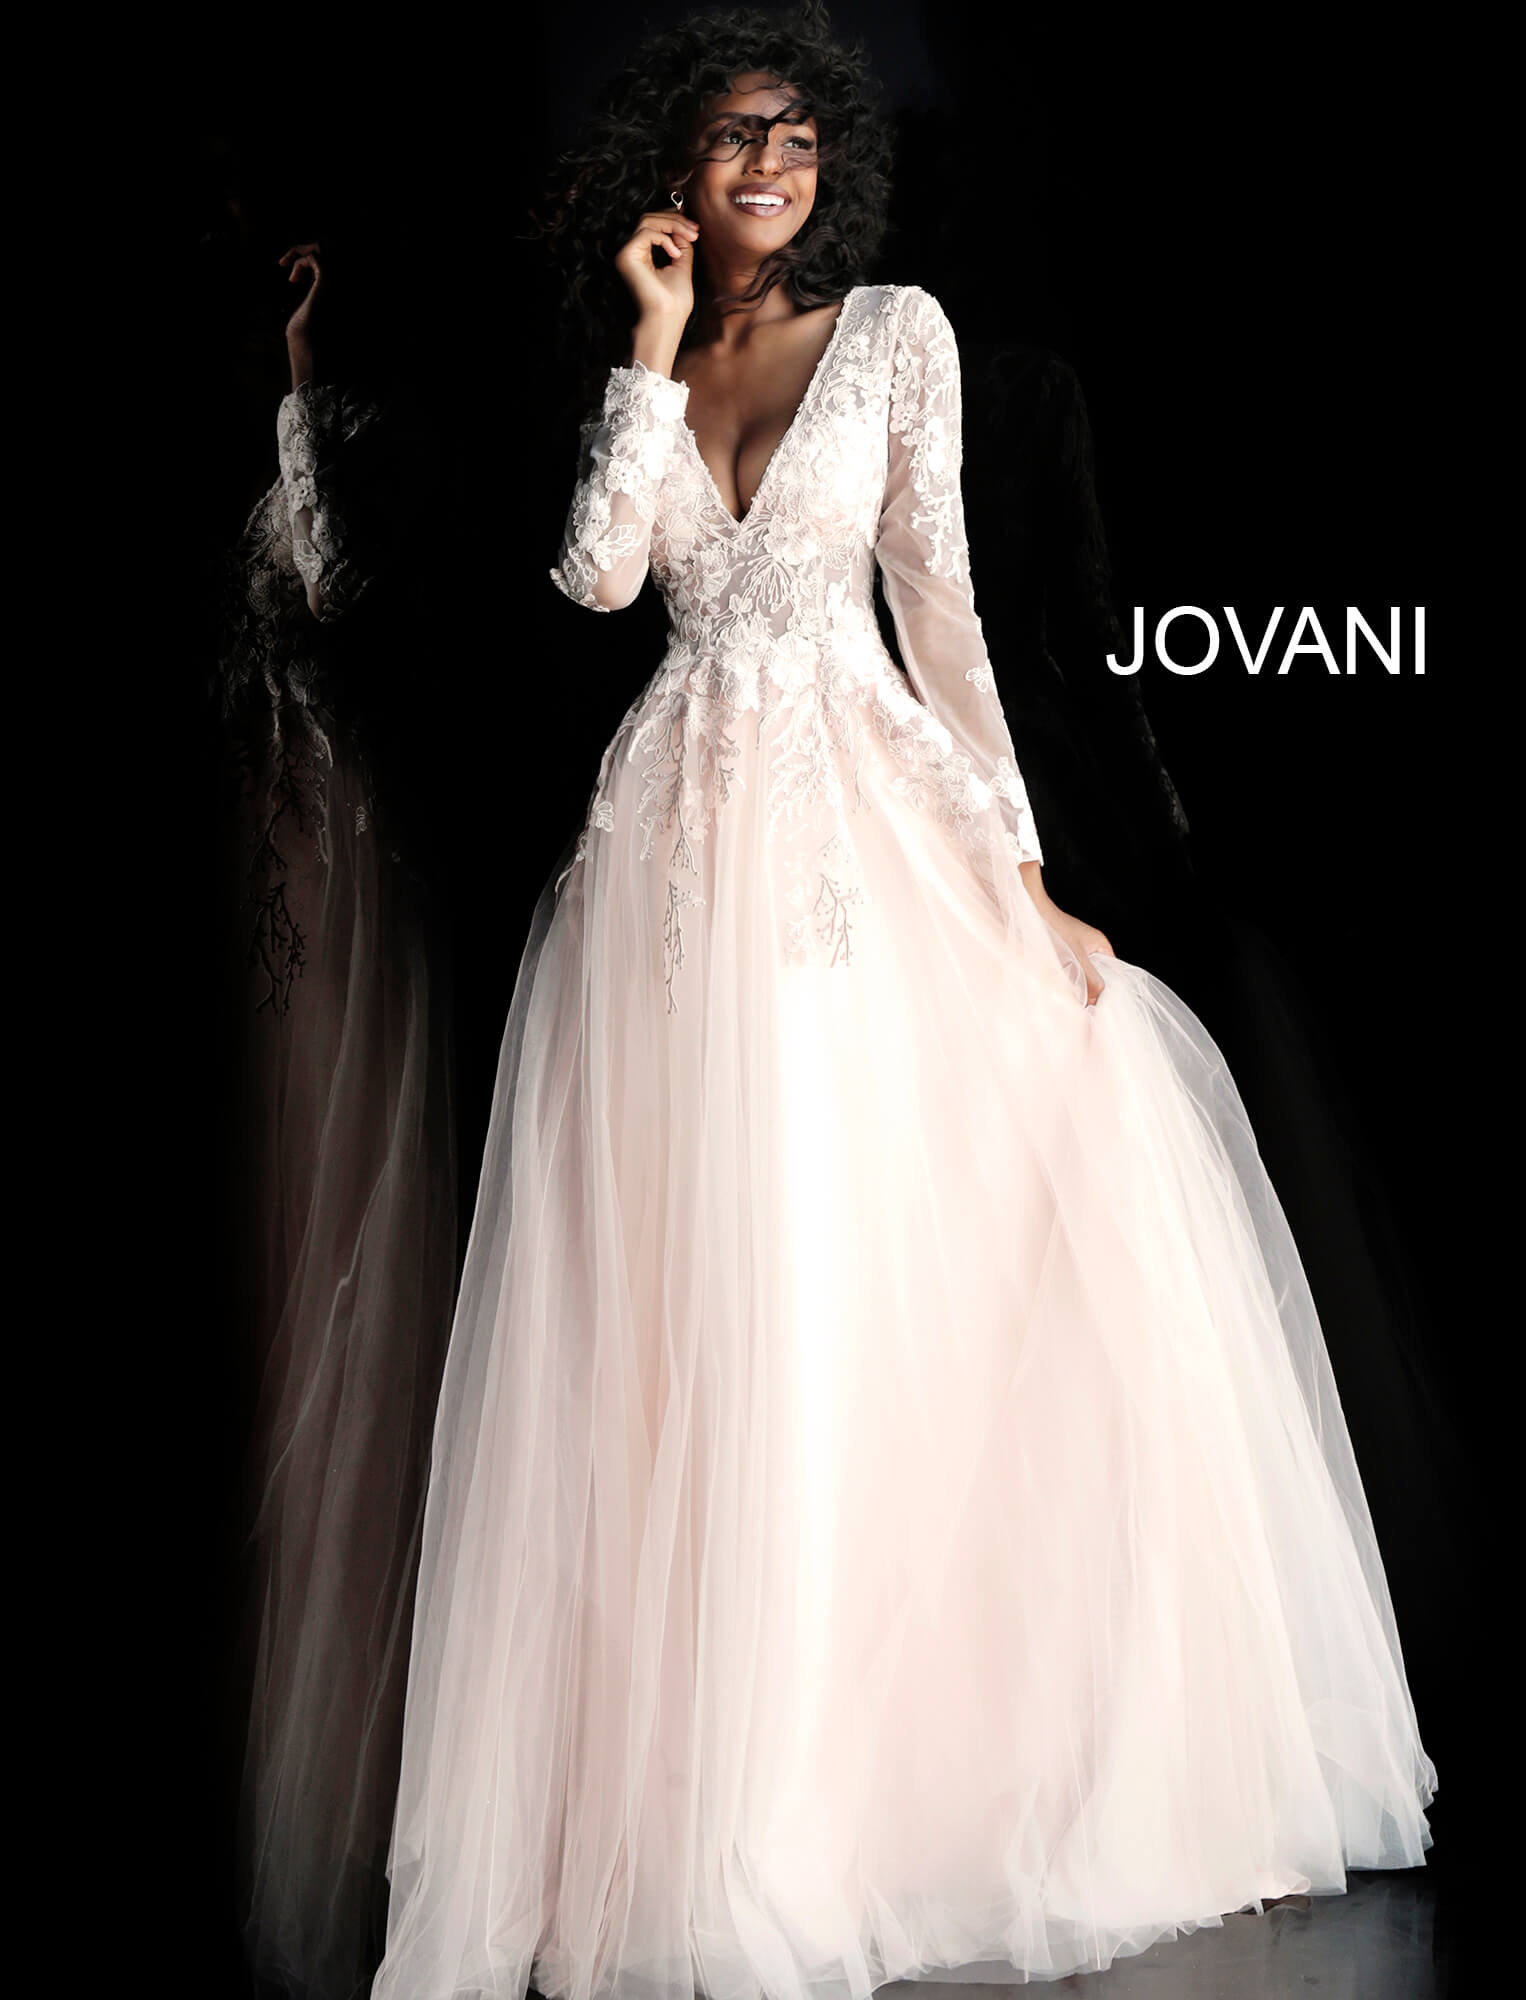 jovani Blush Floral Appliques Long Sleeve Prom Ballgown 67393